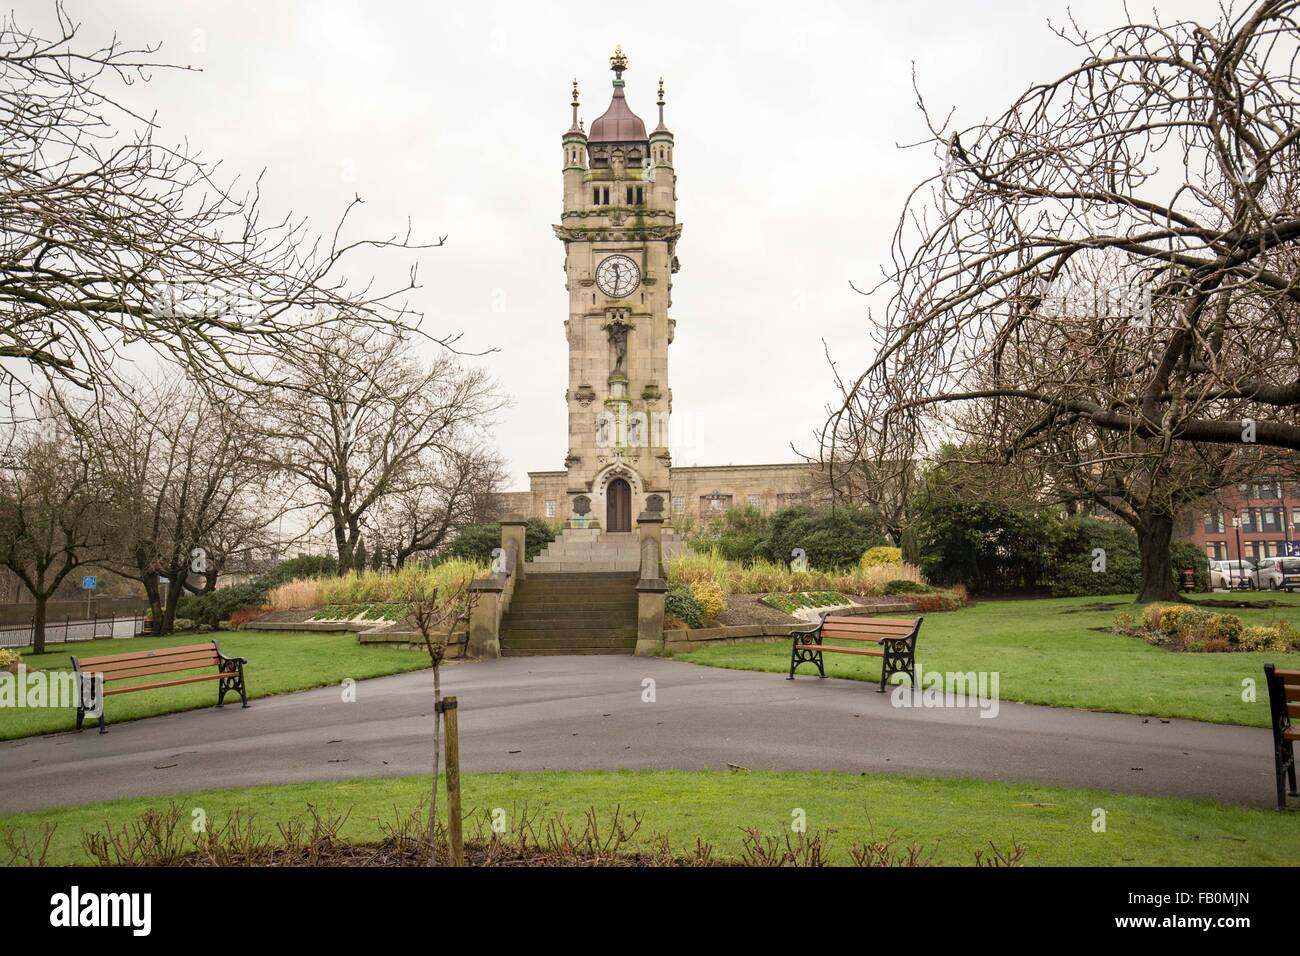 The Whitehead Clock Tower in Tower Gardens, Bury, Greater Manchester, England, UK - Stock Image